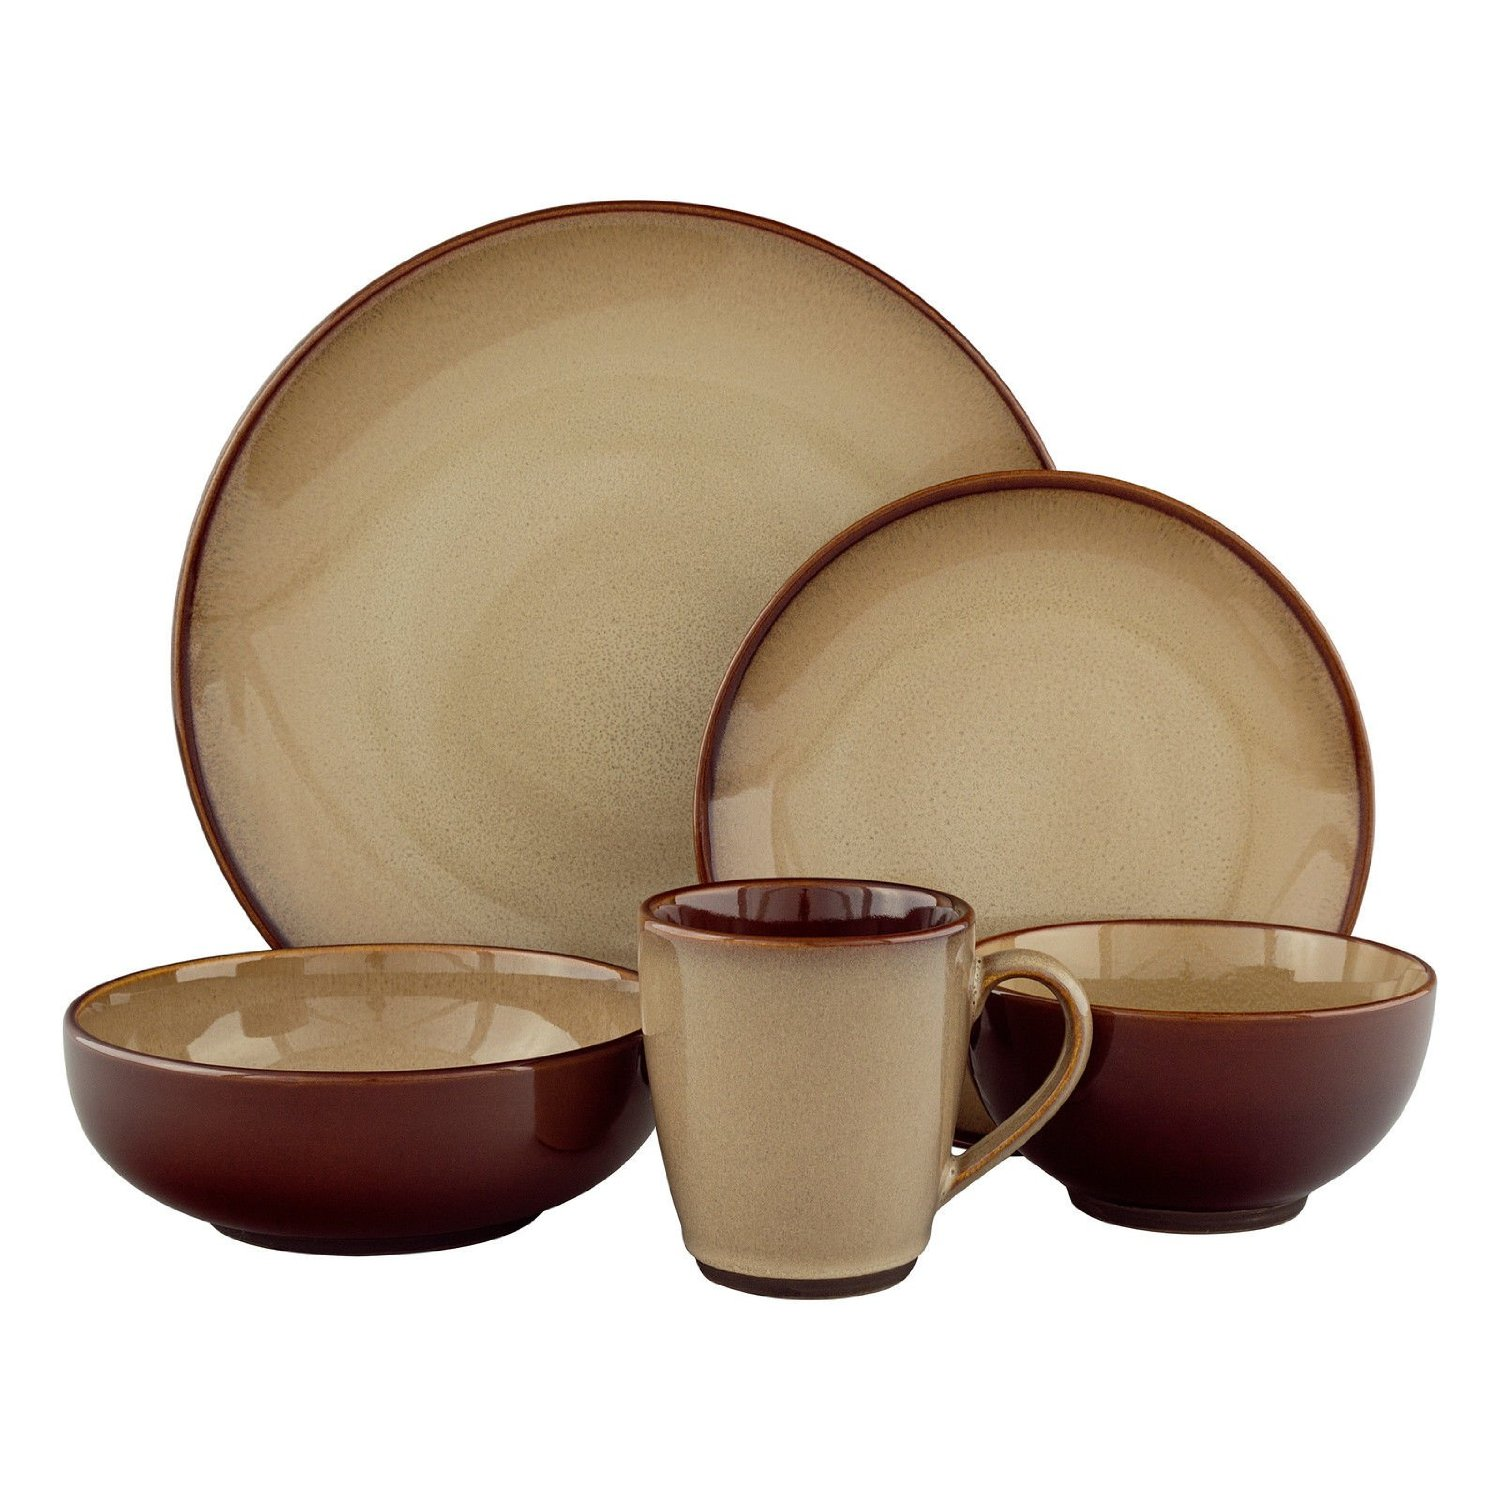 Terrific stoneware dinnerware for kitchen and dining sets with stoneware dinnerware sets